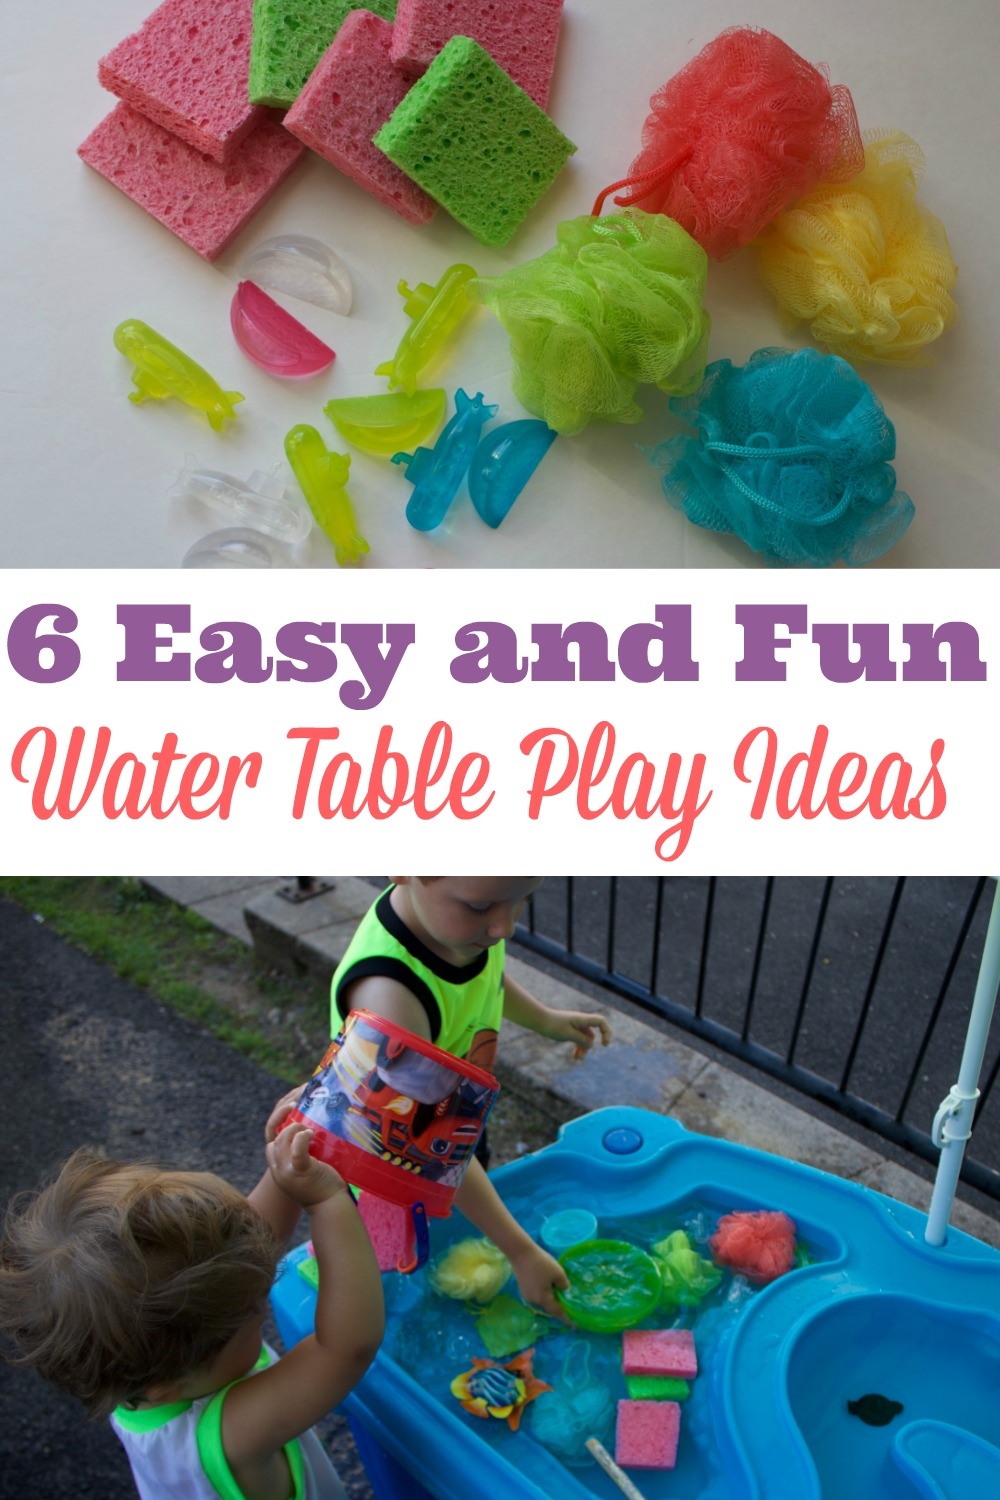 Outdoor Toys For Toddlers And Preschoolers : Water table play ideas super summer fun series simply